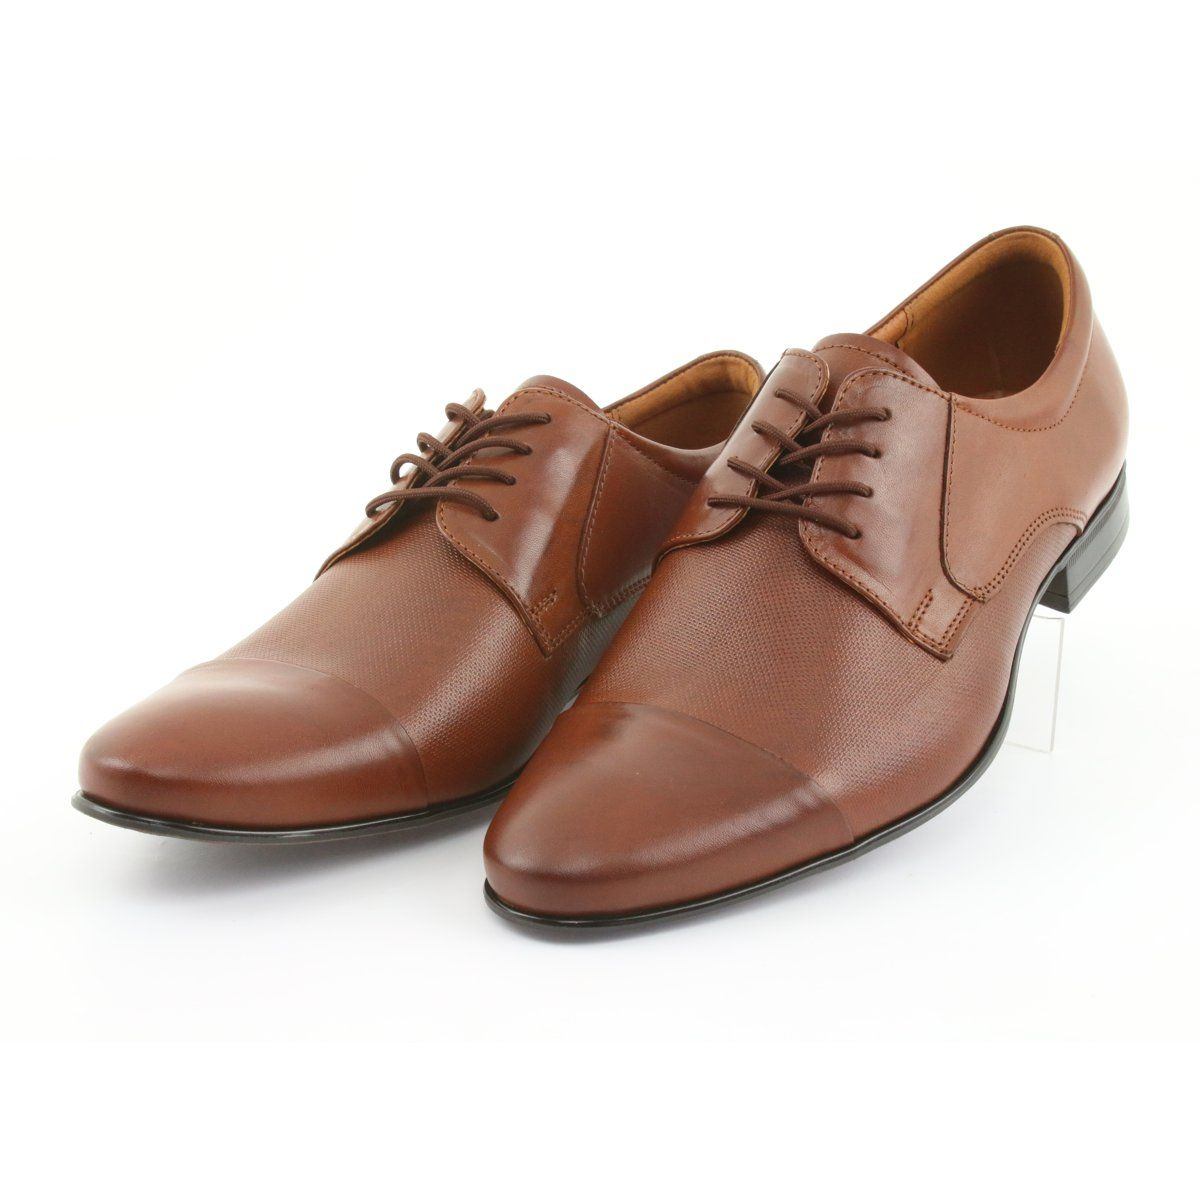 Boots With Leather Binding Tur Brown Leather Shoes Men Dress Shoes Men Shoes Mens